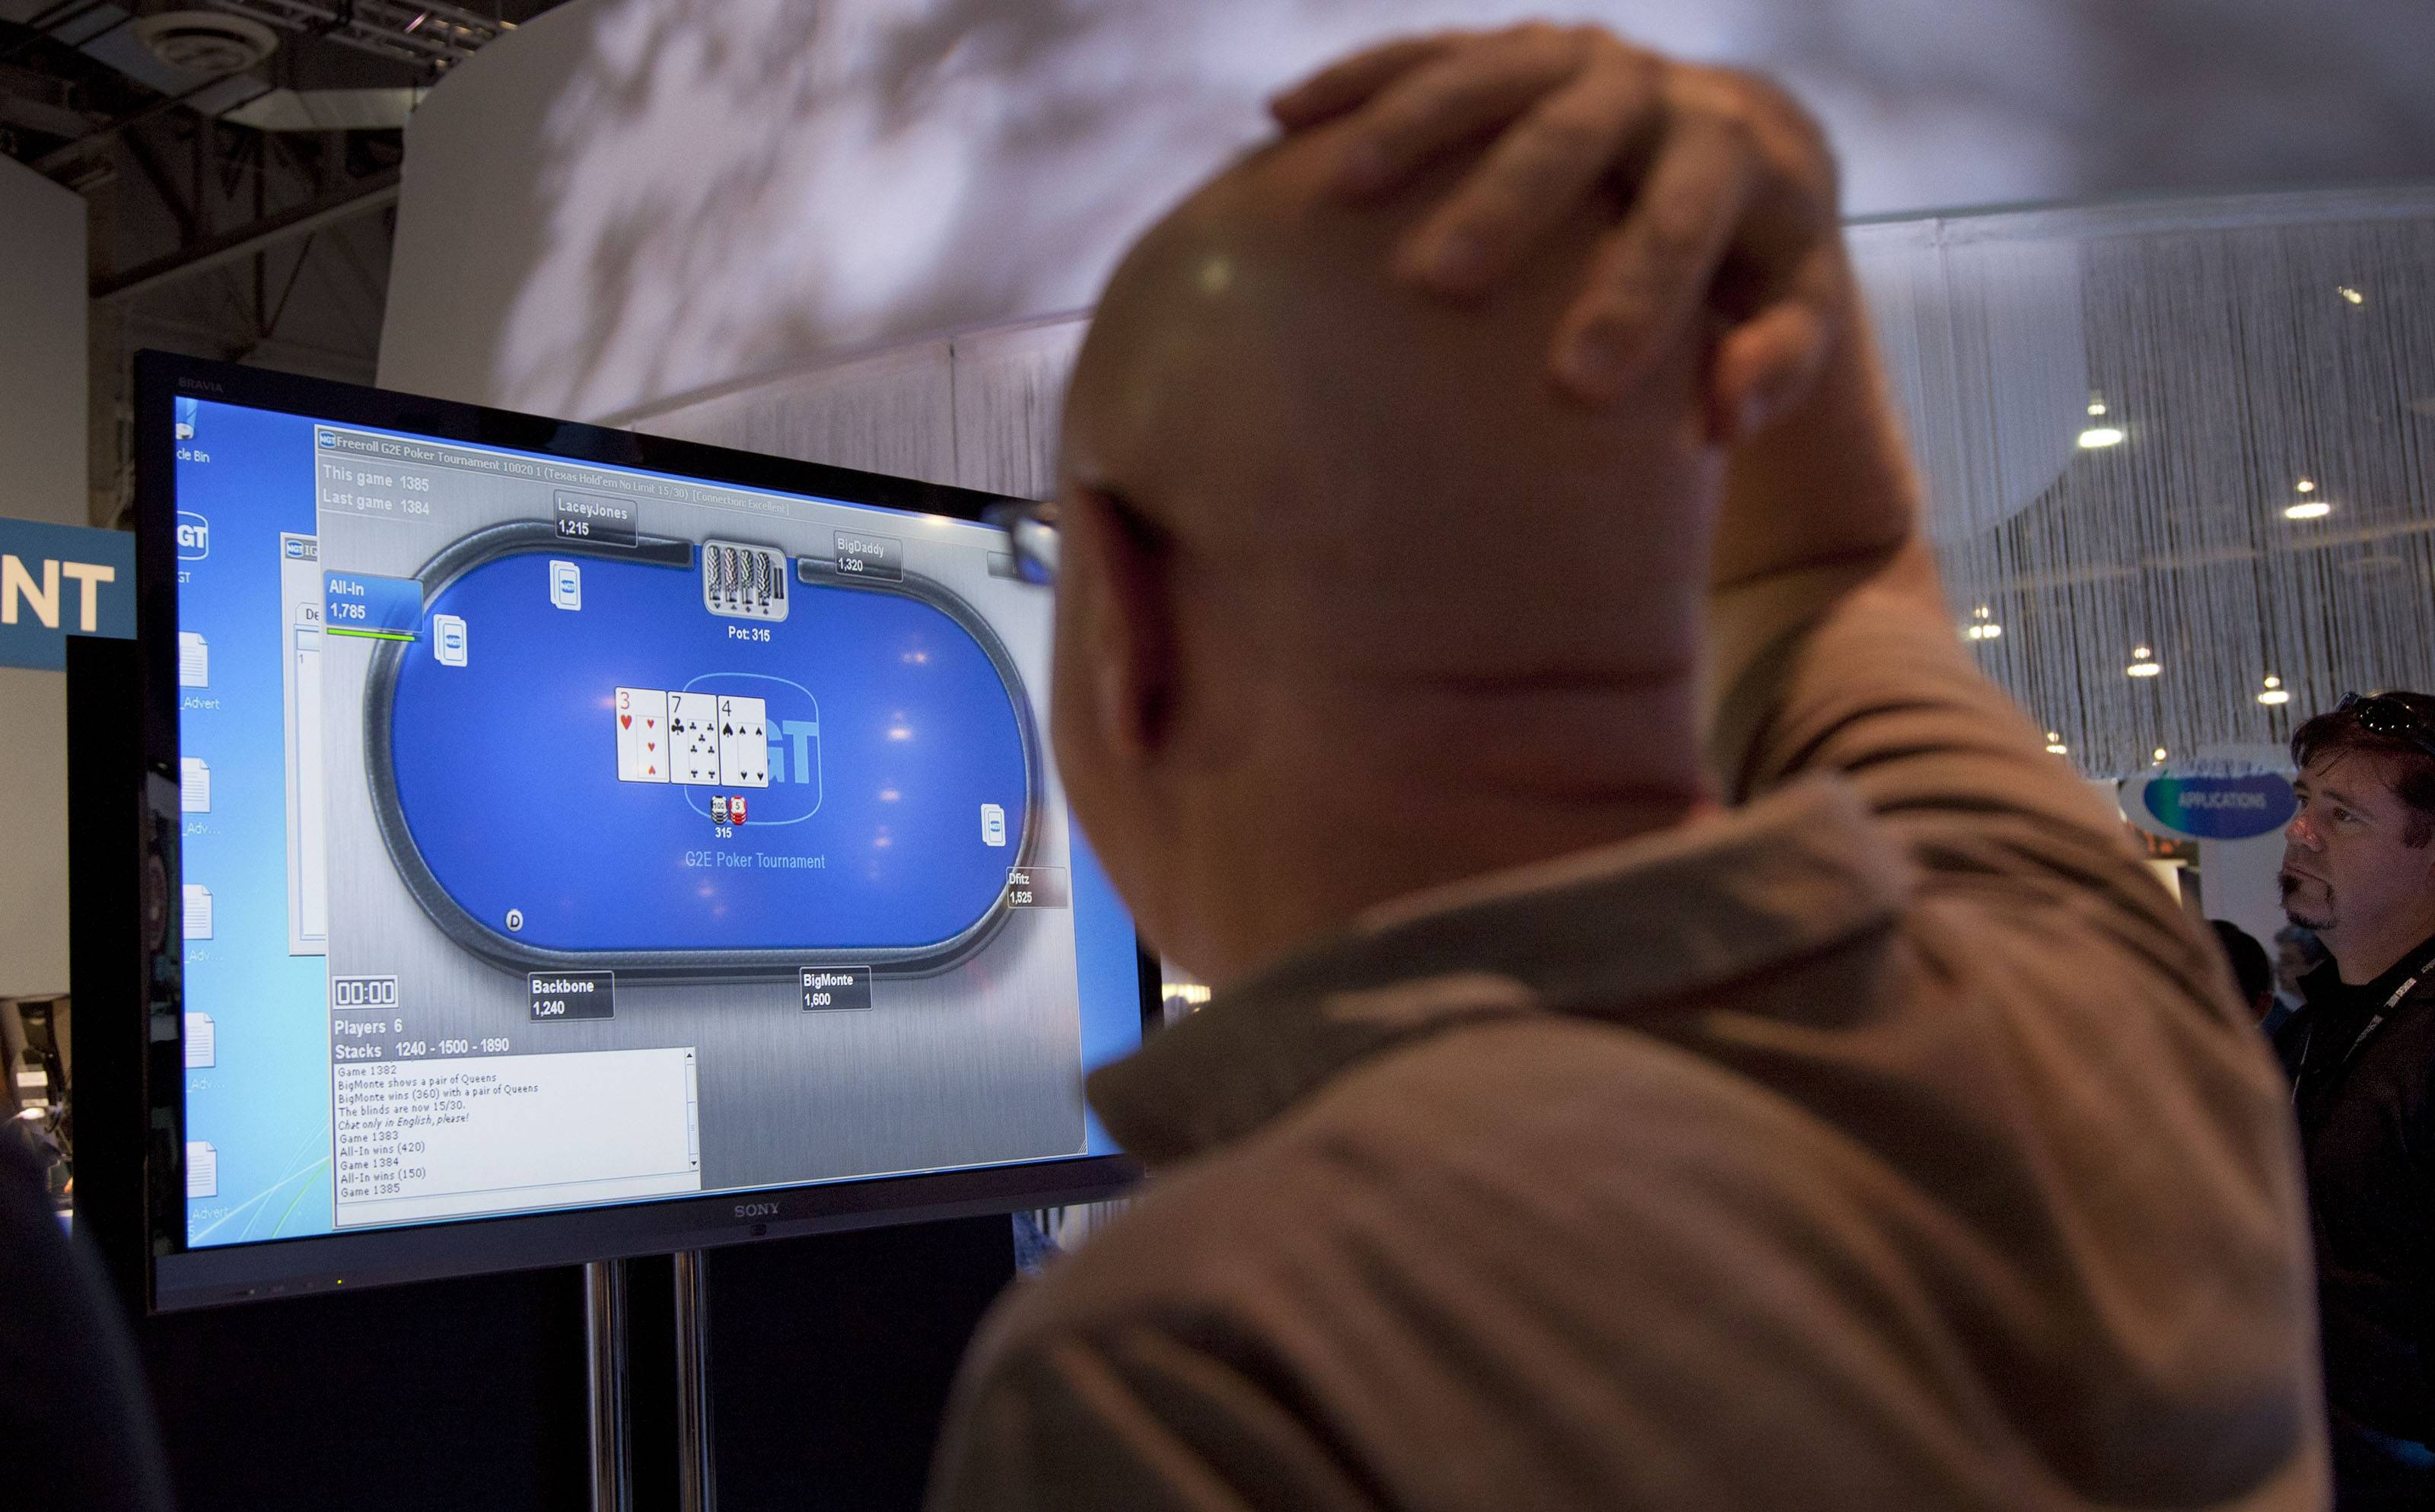 Associated Press Photo casino industry representatives and exhibitors watch an online poker game at the industry's G2E gaming conference in Las Vegas.